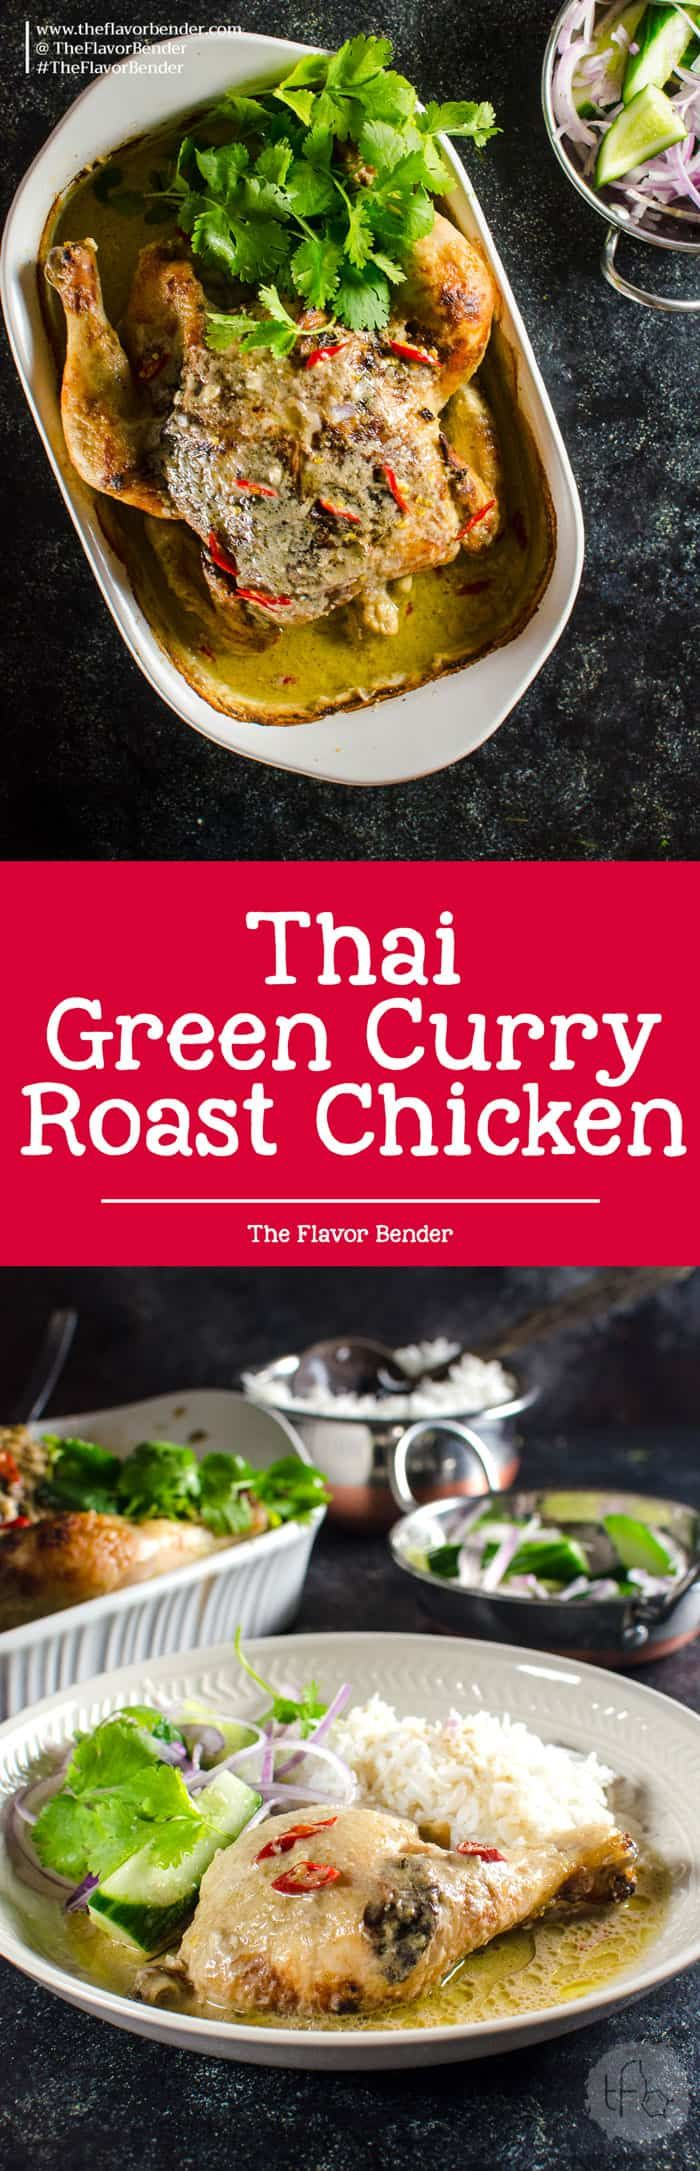 Thai Green Curry Roasted Chicken - Tips to make perfectly cooked, succulent flavorful Roast Chicken with a creamy and spicy Thai Green Curry gravy via @theflavorbender